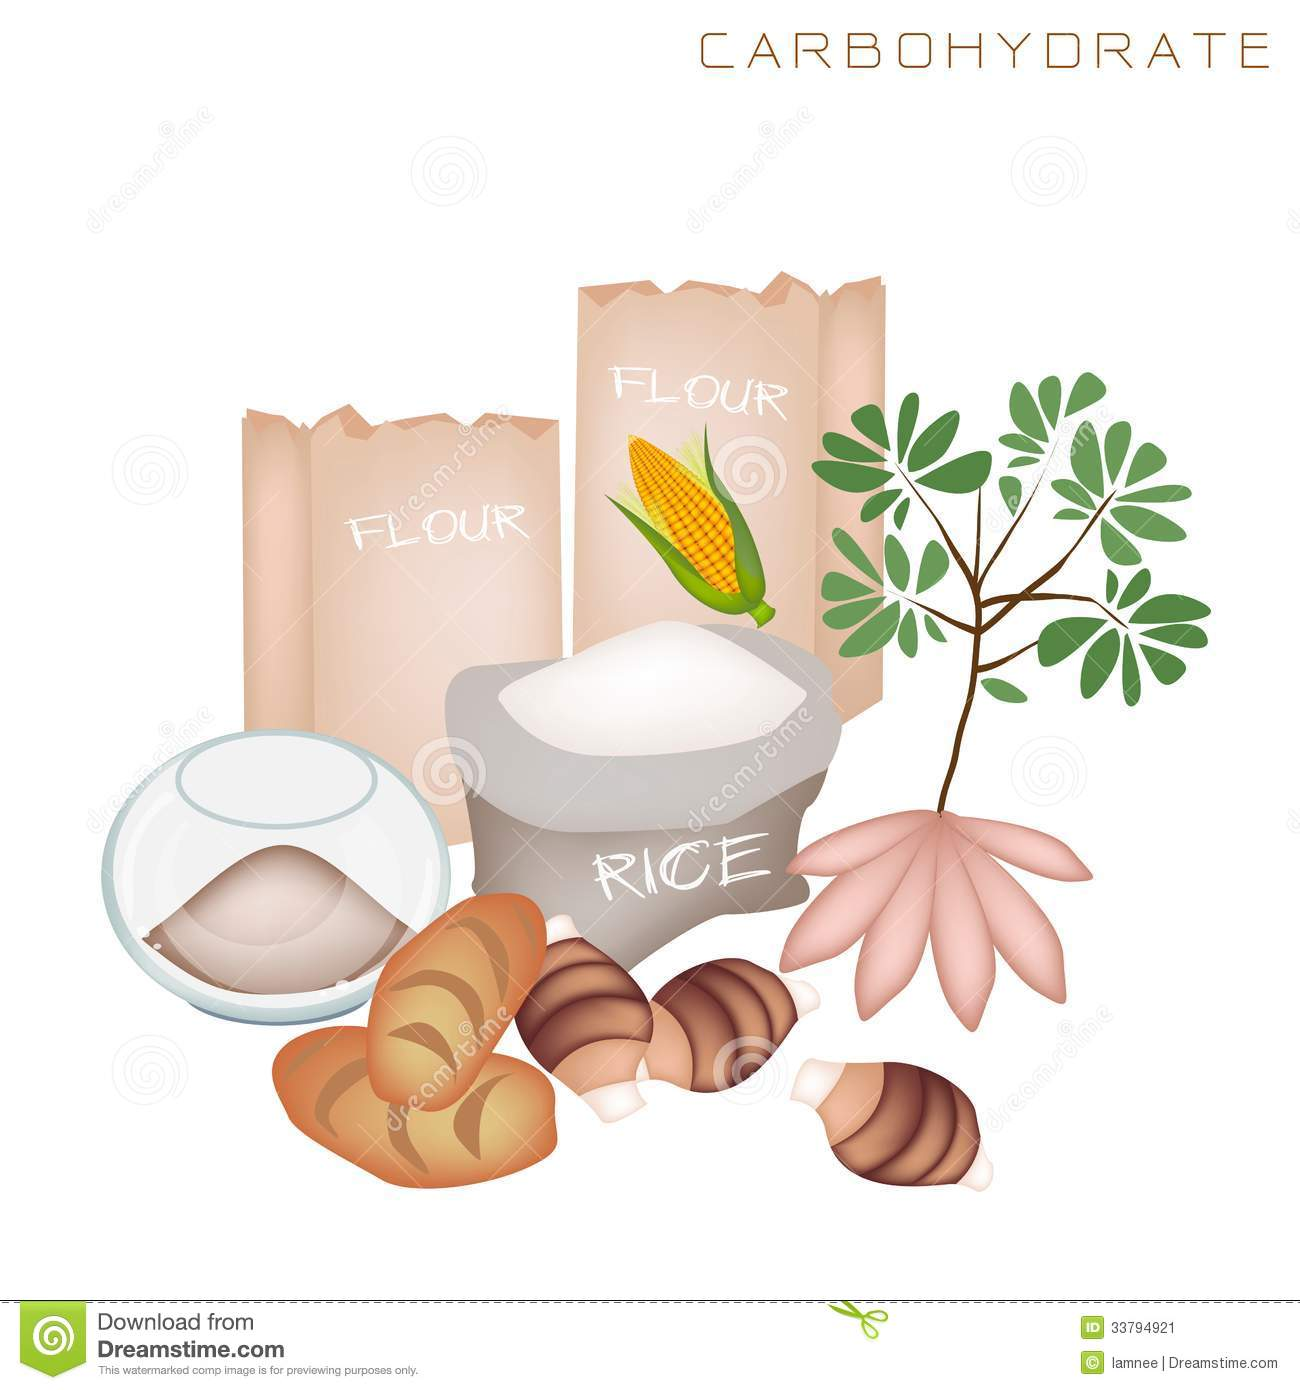 Health And Nutrition Benefits Of Carbohydrate Food Stock